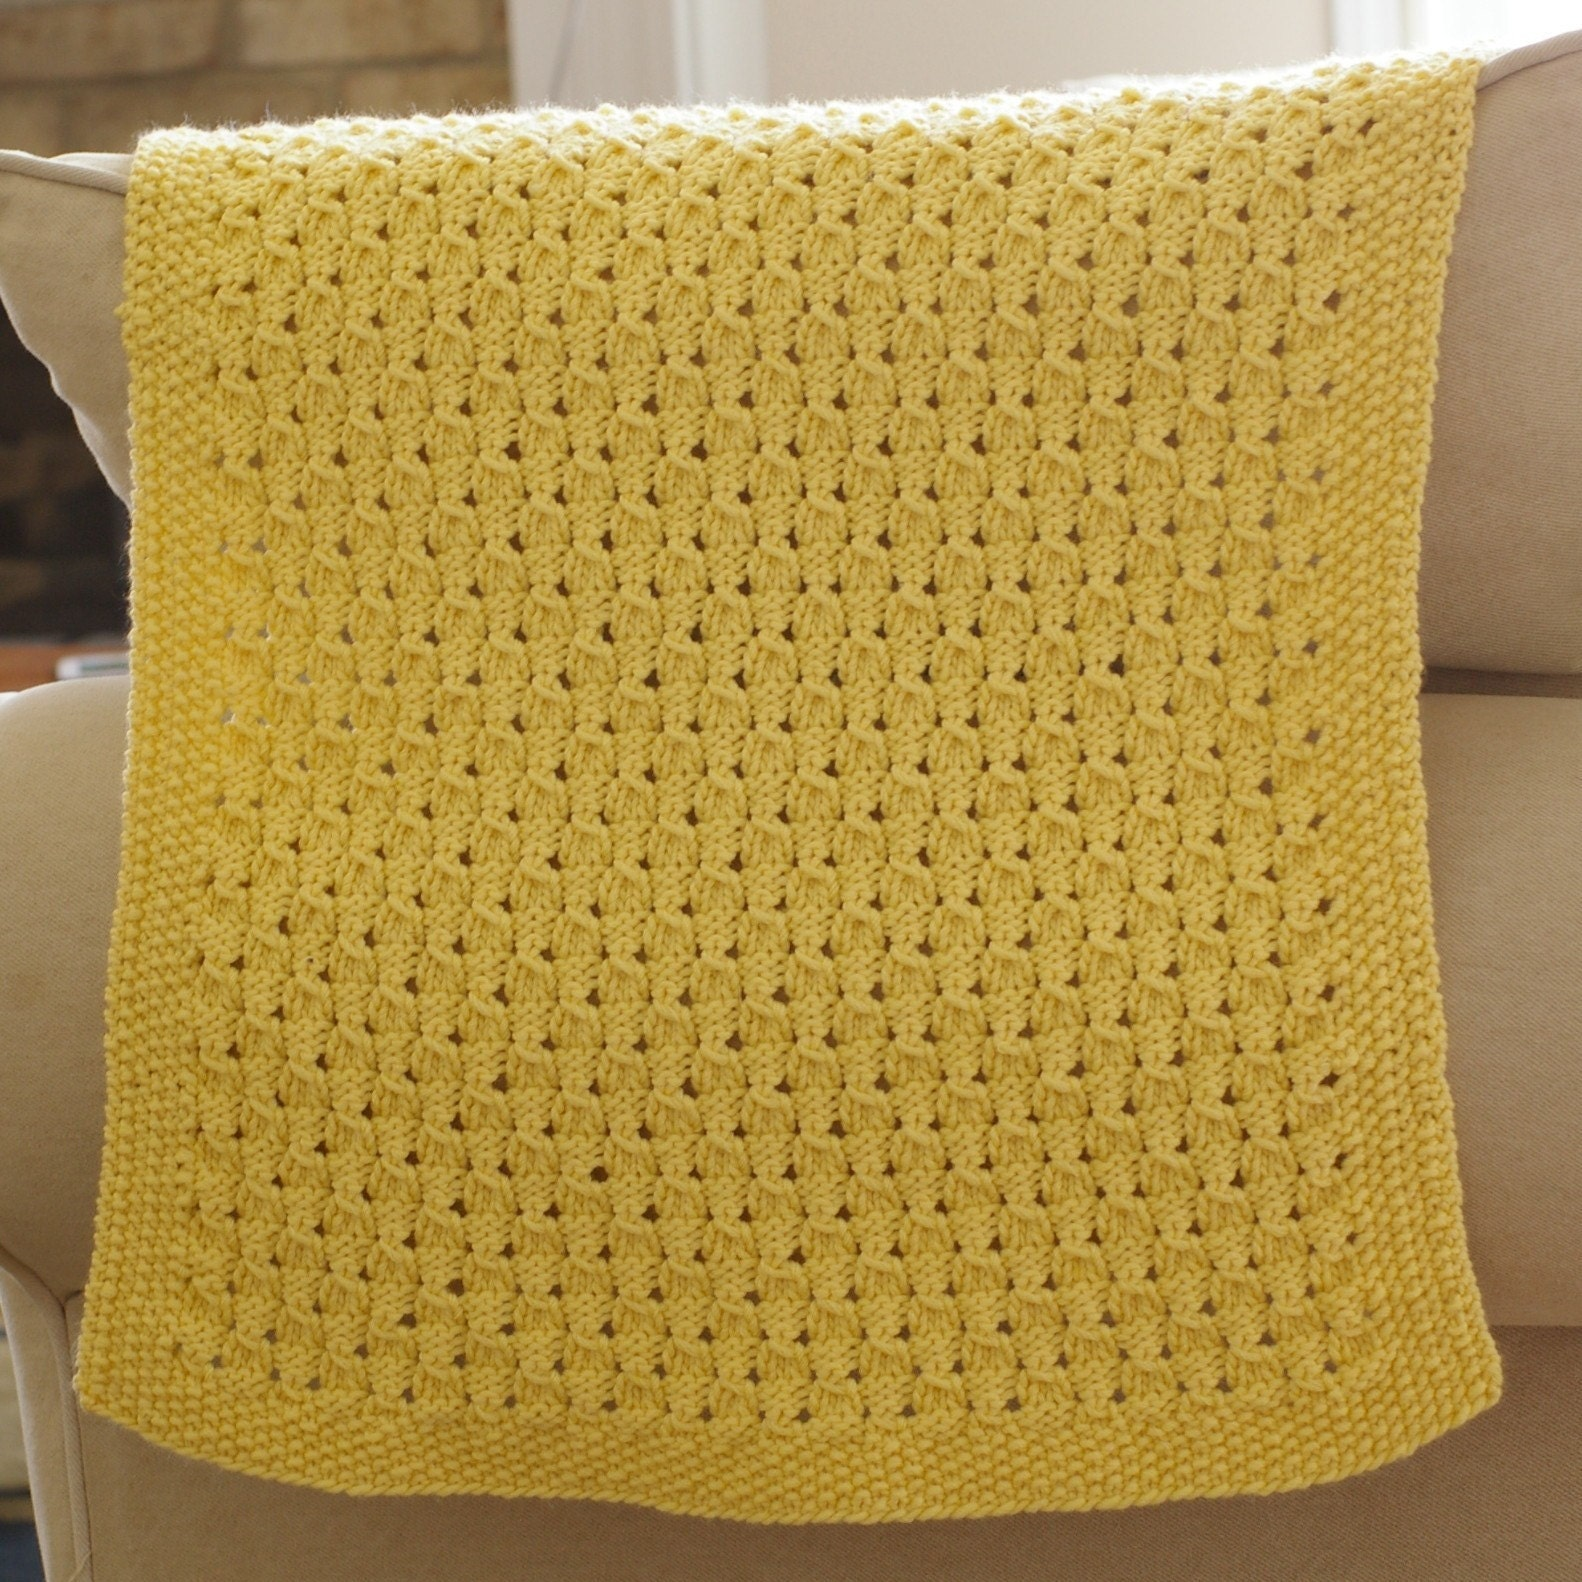 Knitting Pattern For Baby Blanket With Name : Dewdrop Baby Blanket Knitting Pattern